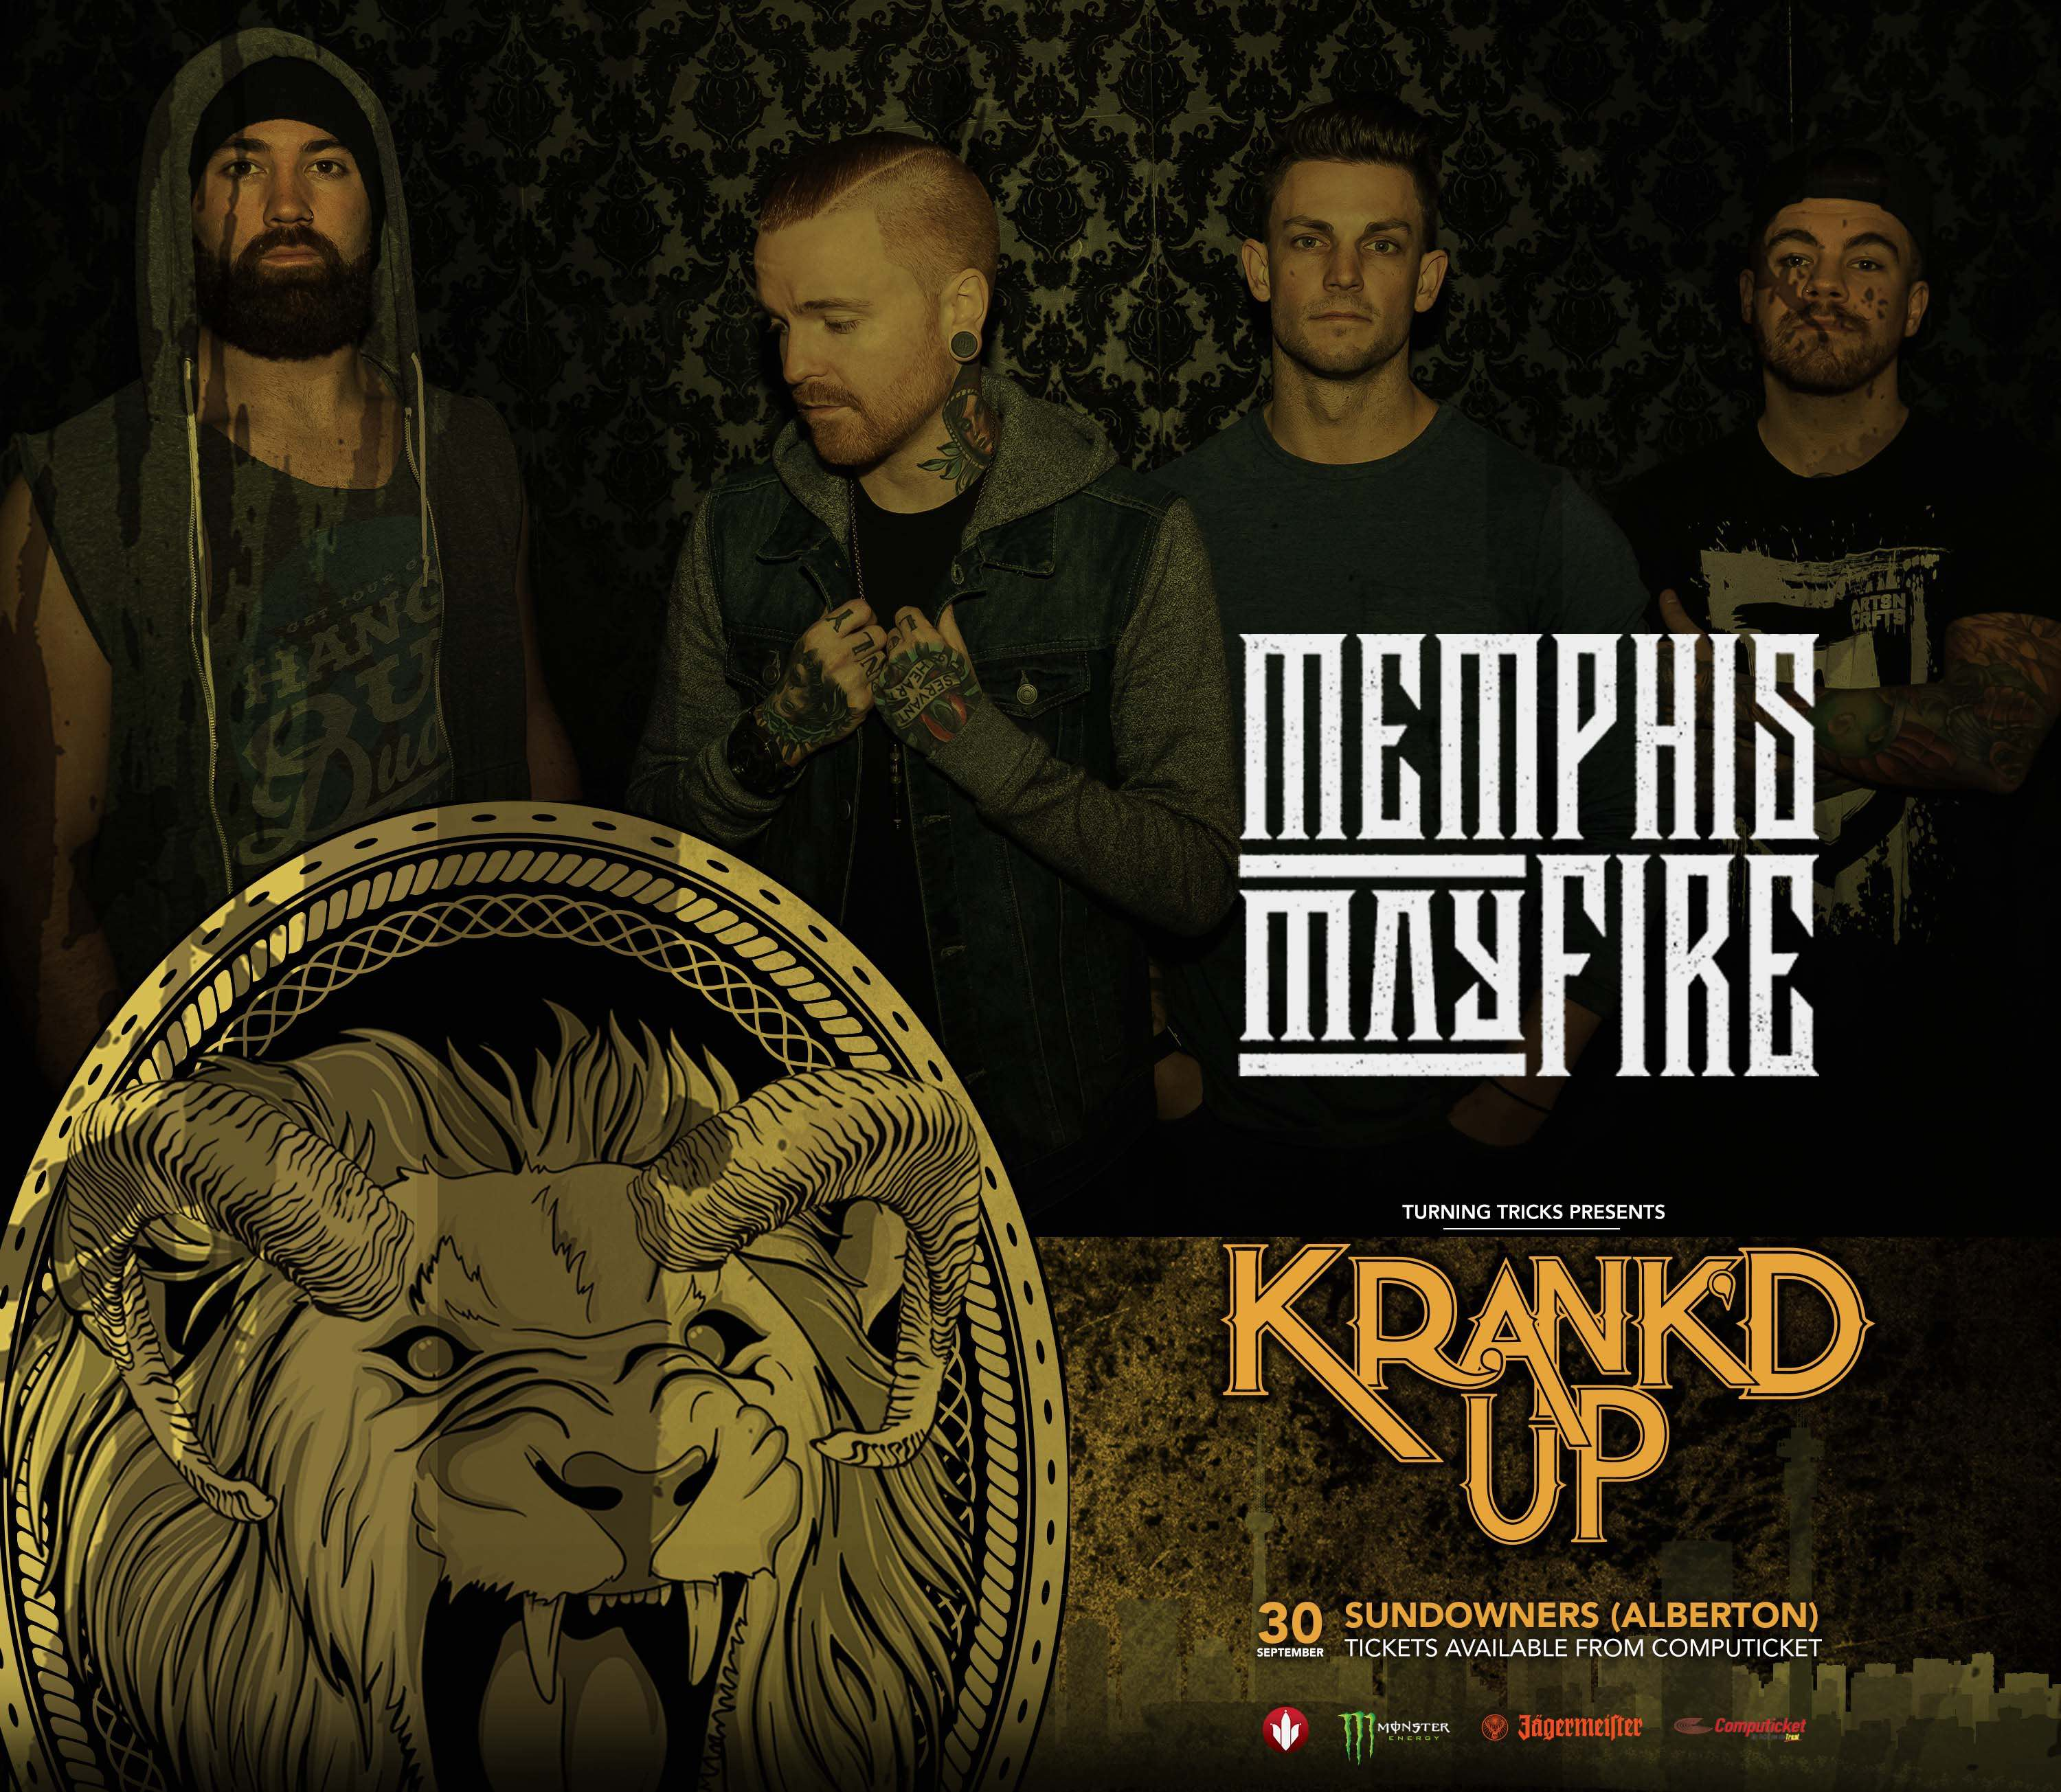 Memphis May Fire announced as the headline internationals act for Krank'd Up 2017